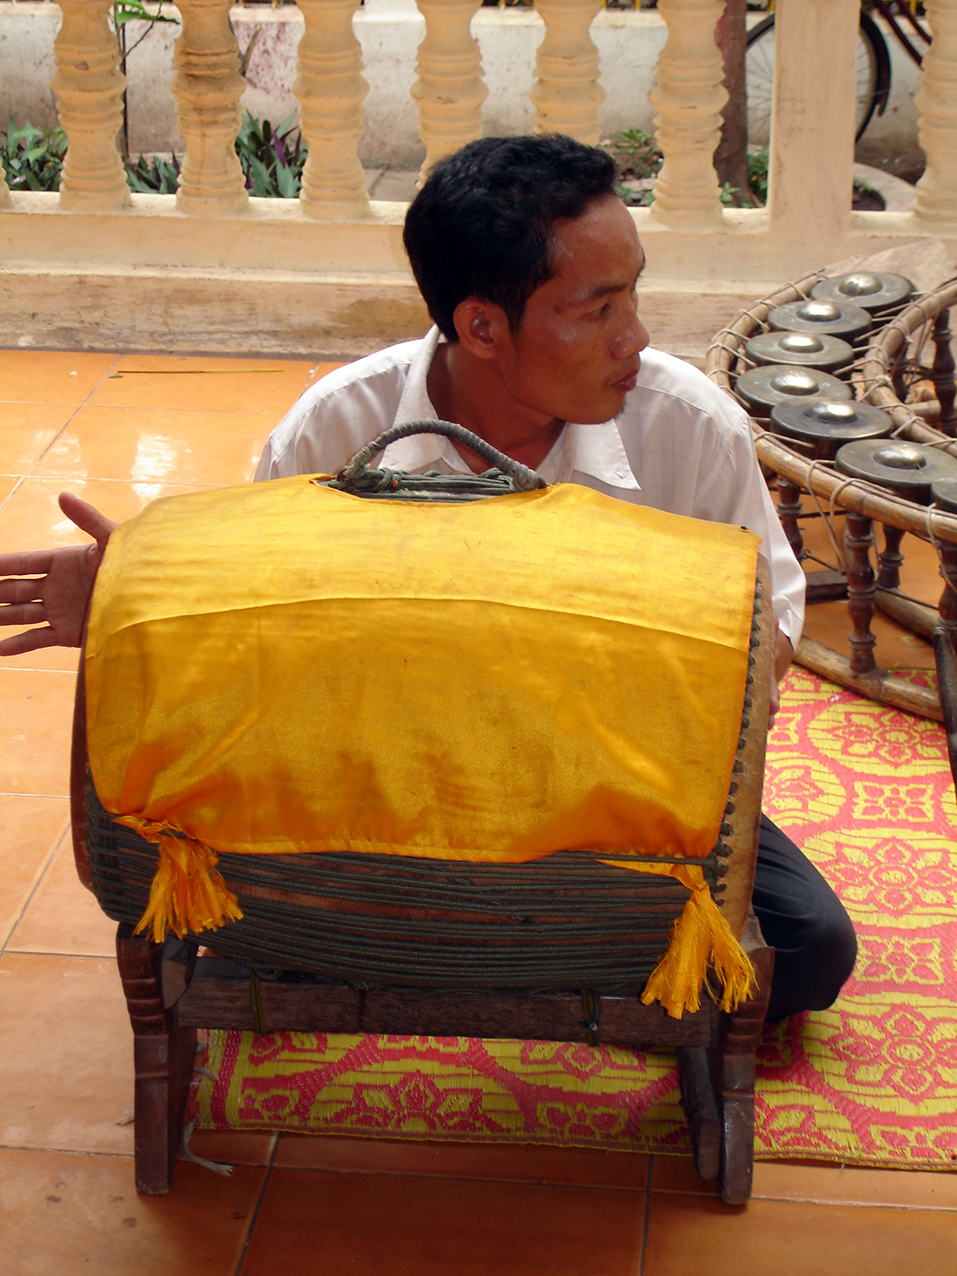 Samphor covered with a yellow fabric. Preah Ang Chek Preah Ang Chorm. ព្រះអង្គចេក ព្រះអង្គចម. Siem Reap 2008.